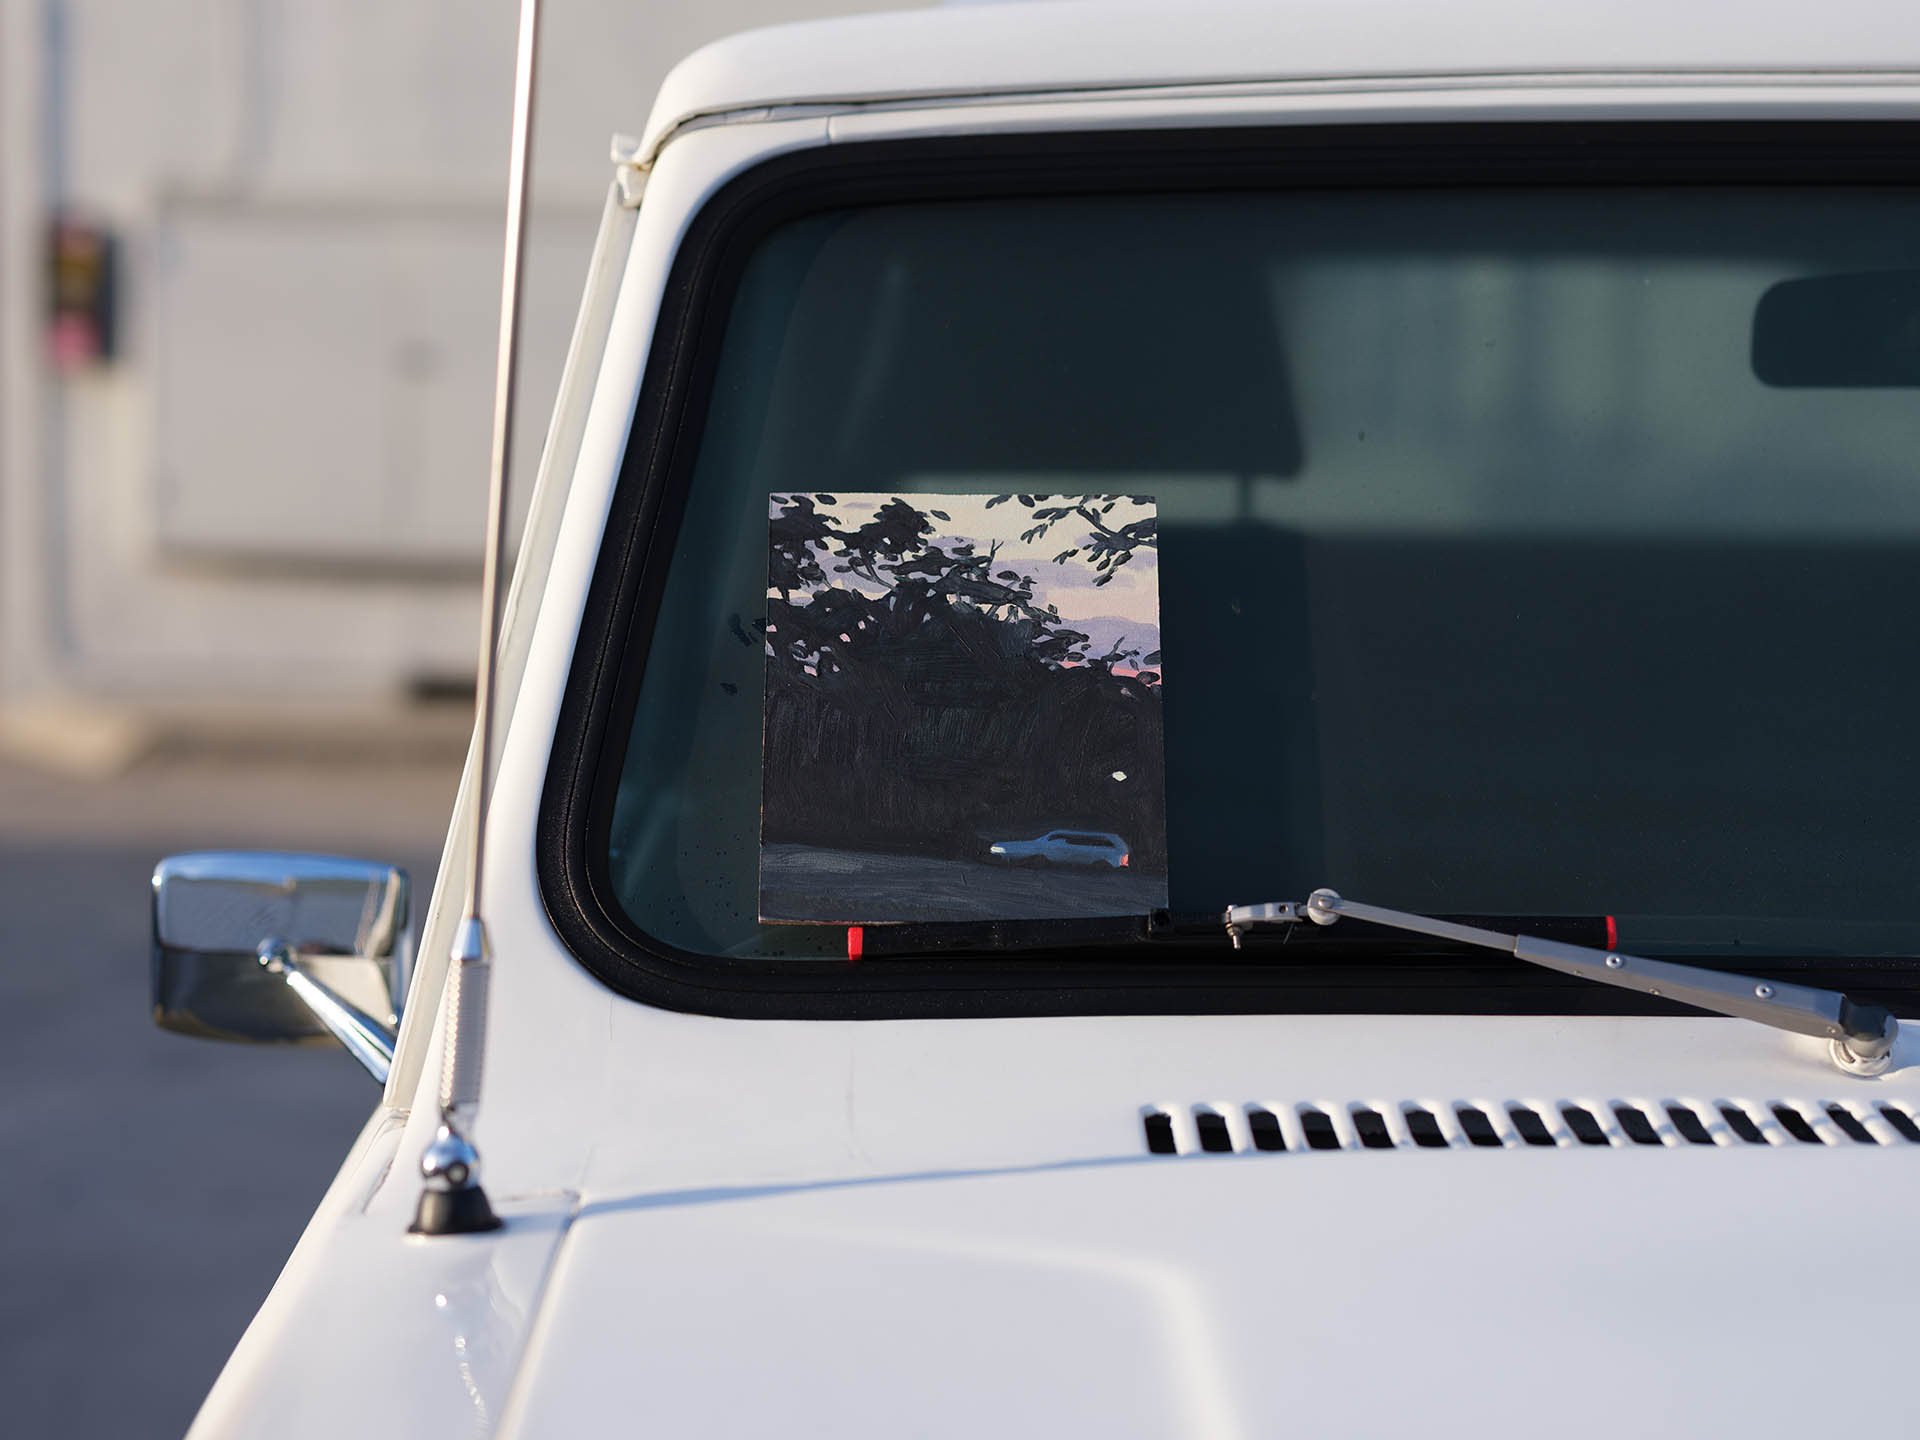 An installation view of Claudia Keep's painting, Driving Uphill, Early Evening, captured by photographer Tag Christof in the Western United States in 2021 for MARCH. The image shows a painting sitting in the windshield of a white car.